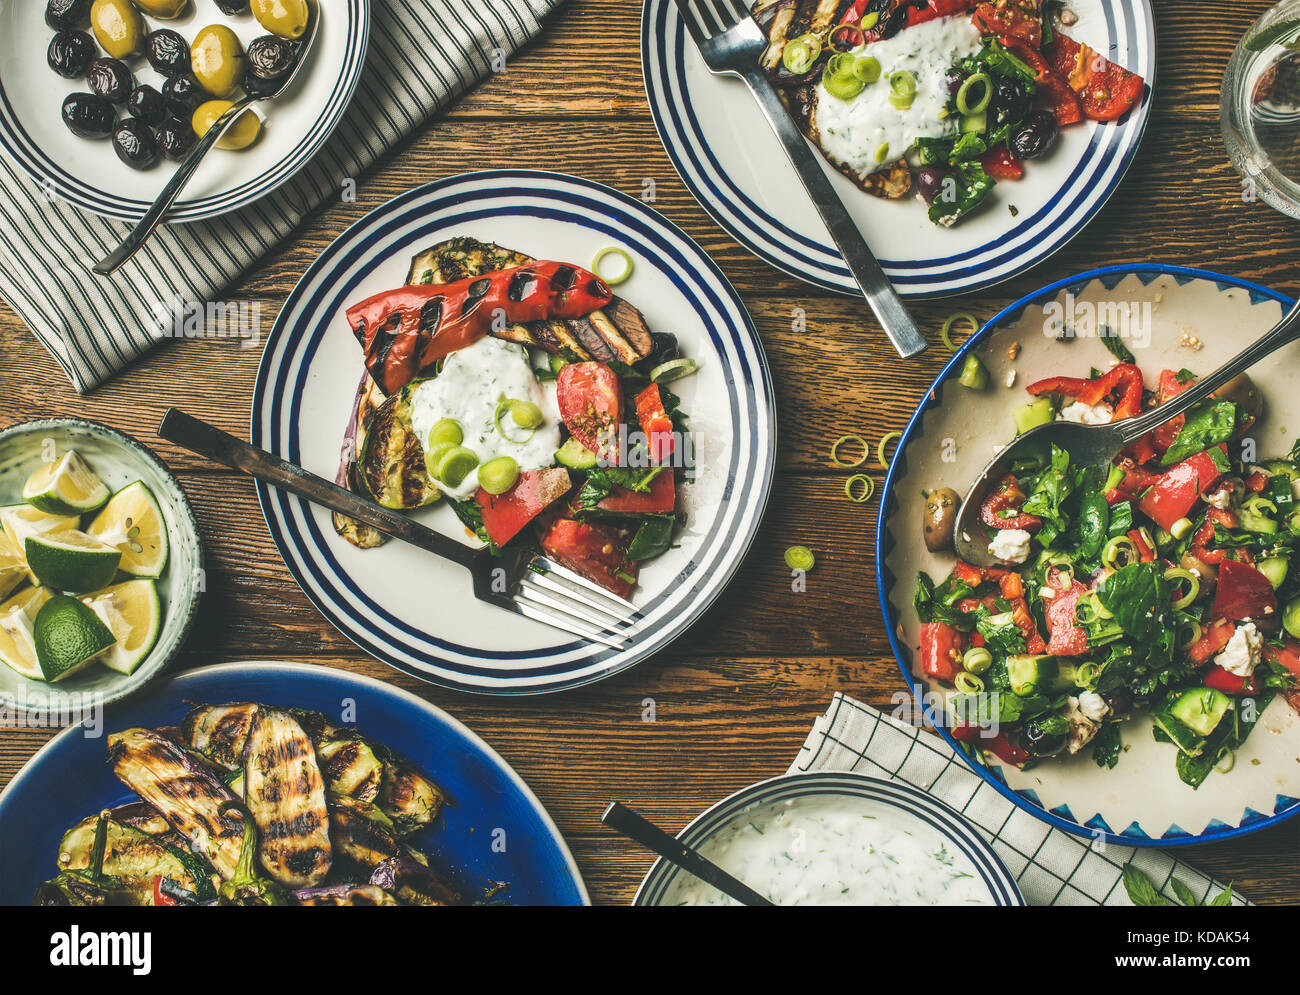 Flat-lay of healthy dinner table setting with green salad - Stock Image